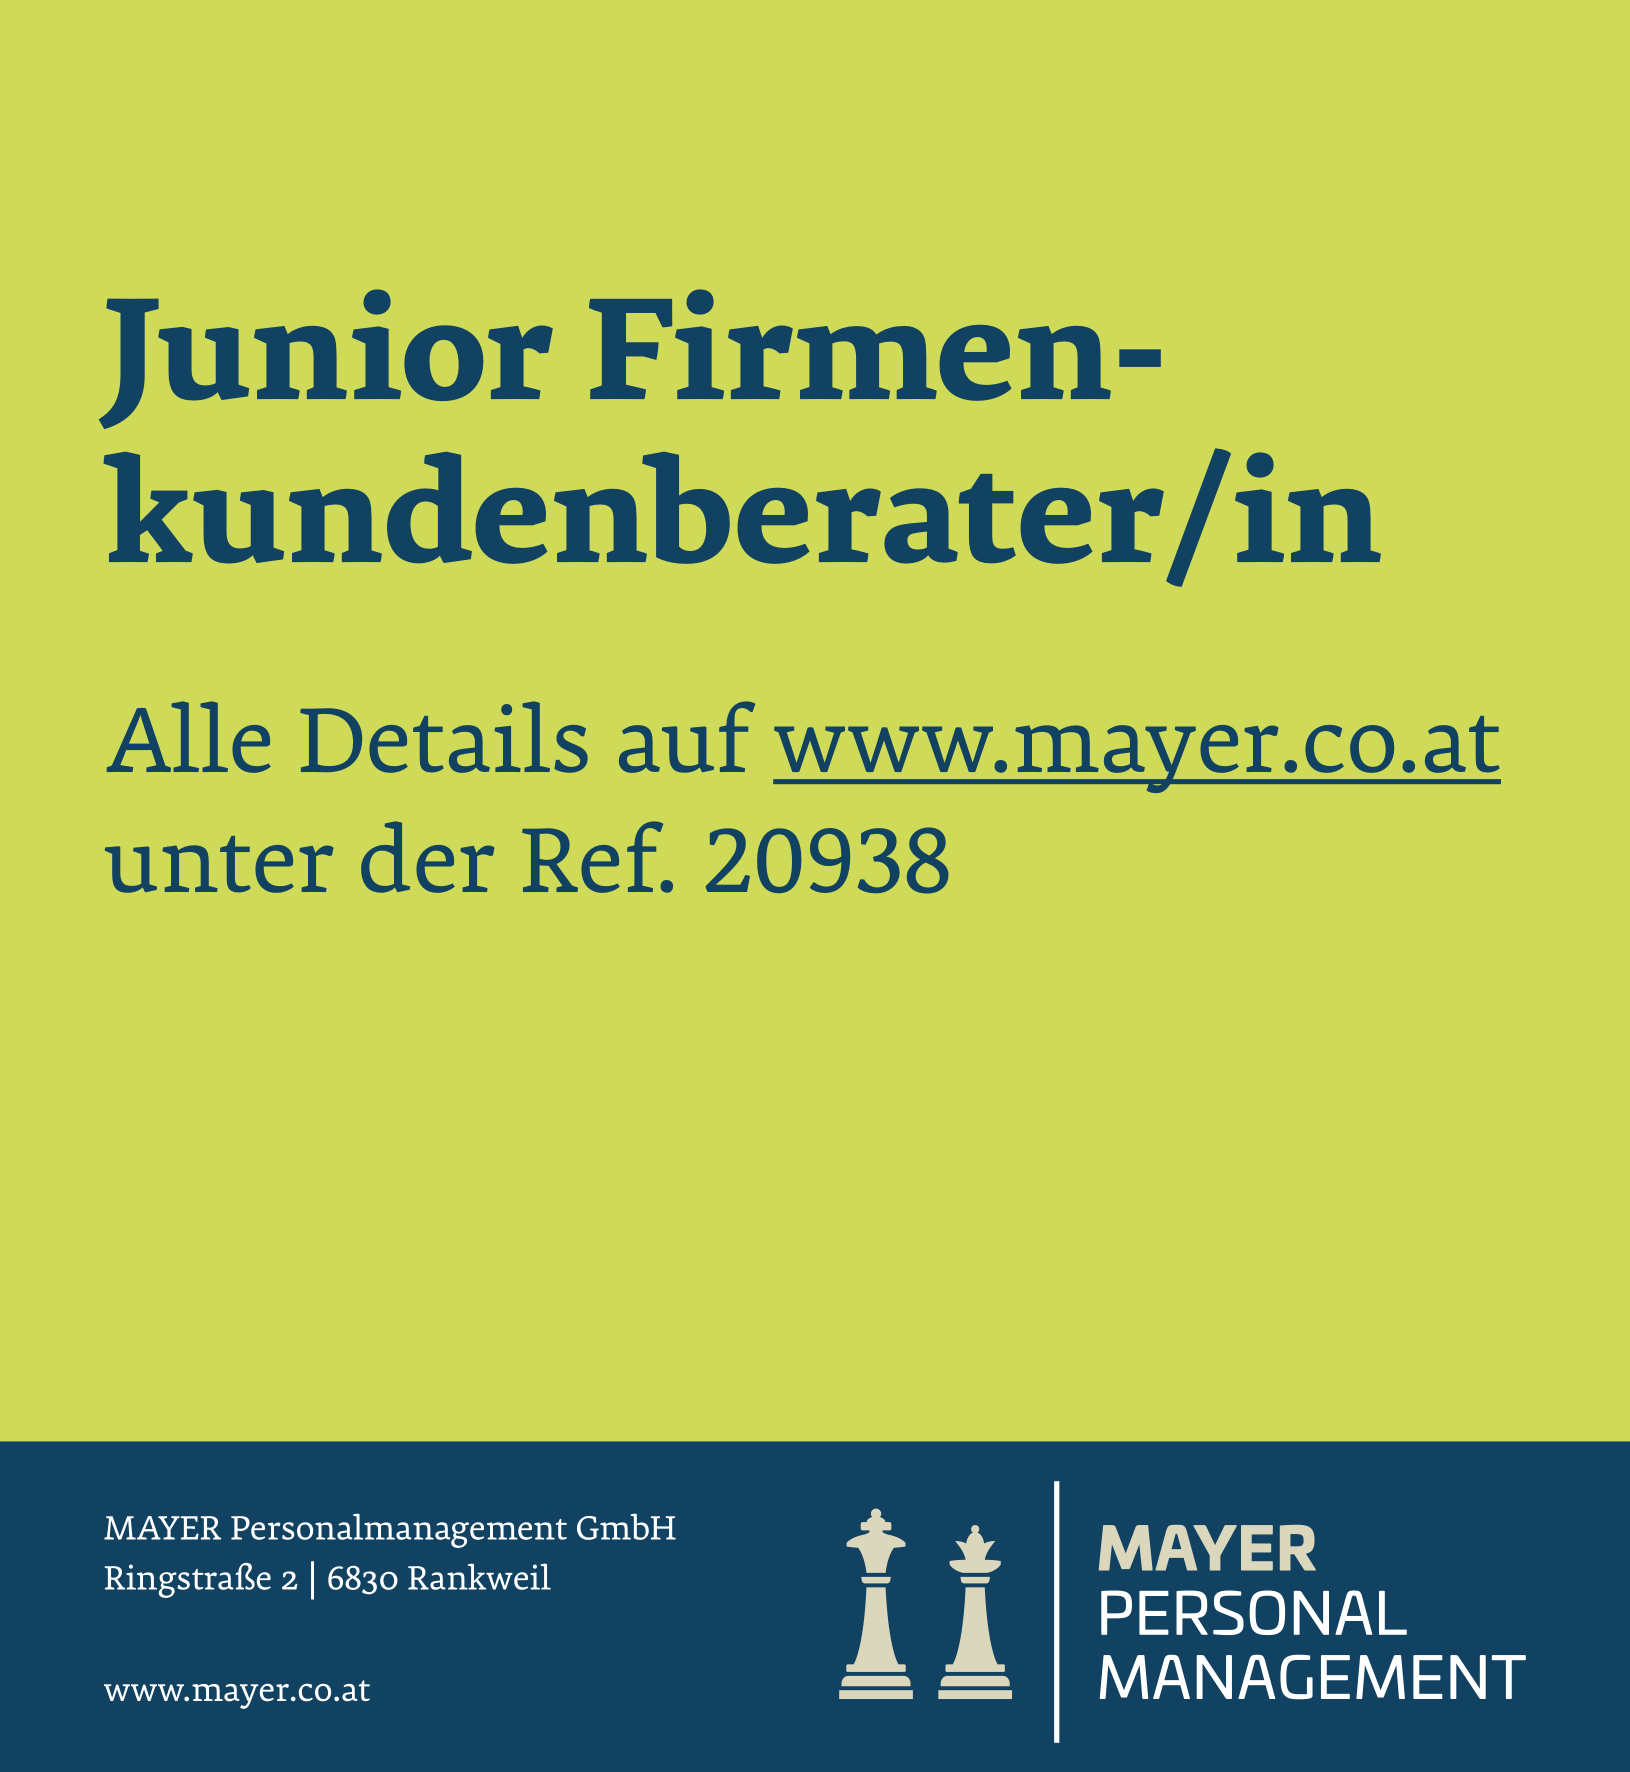 Junior Firmenkundenberater/in